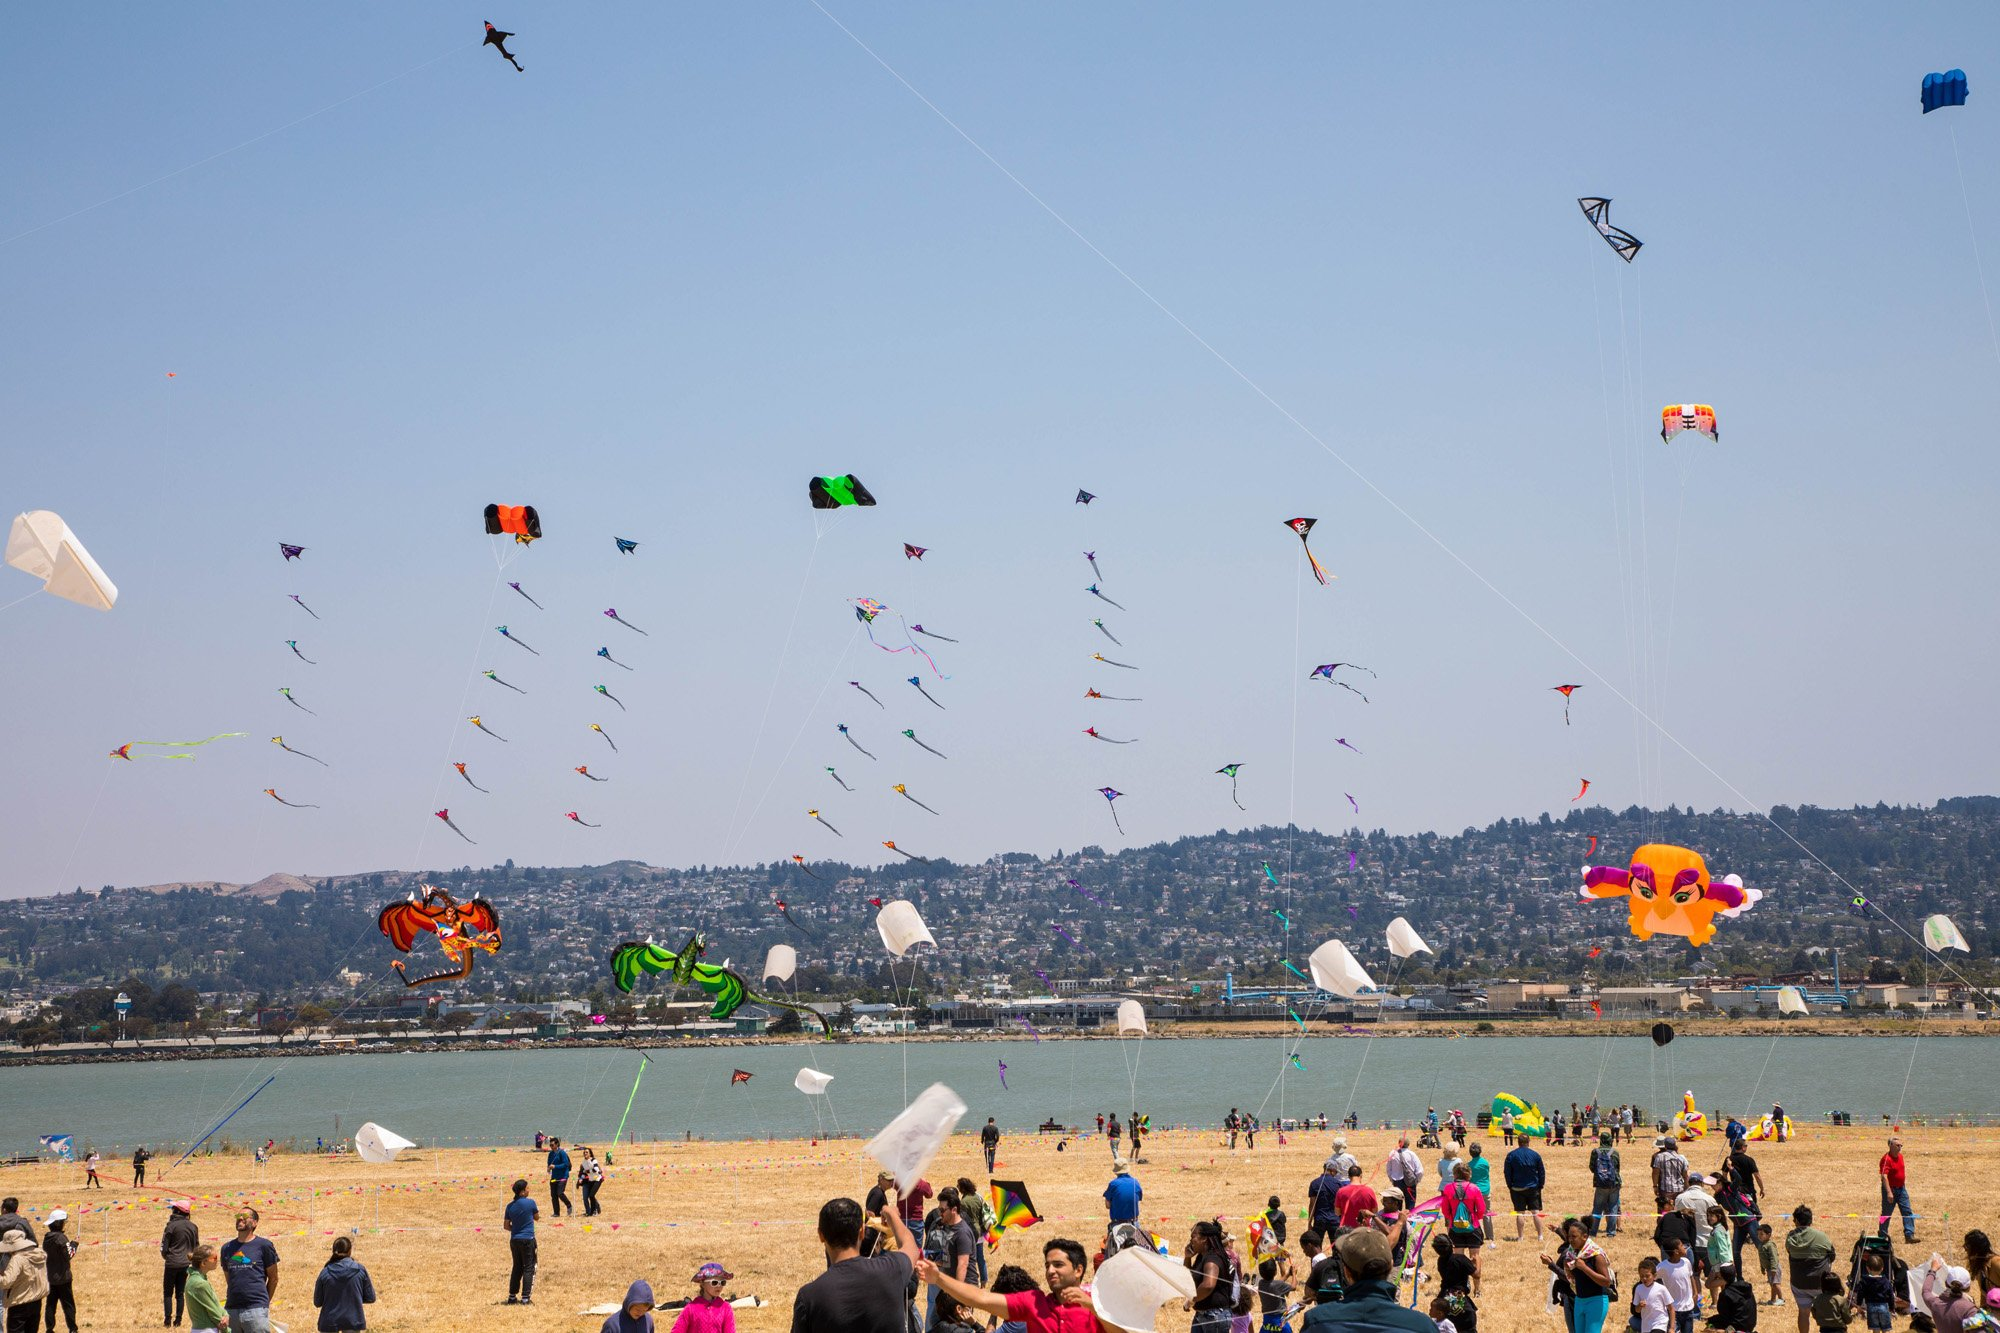 Berkeley Kite Festival - Fun for Kids of All Ages